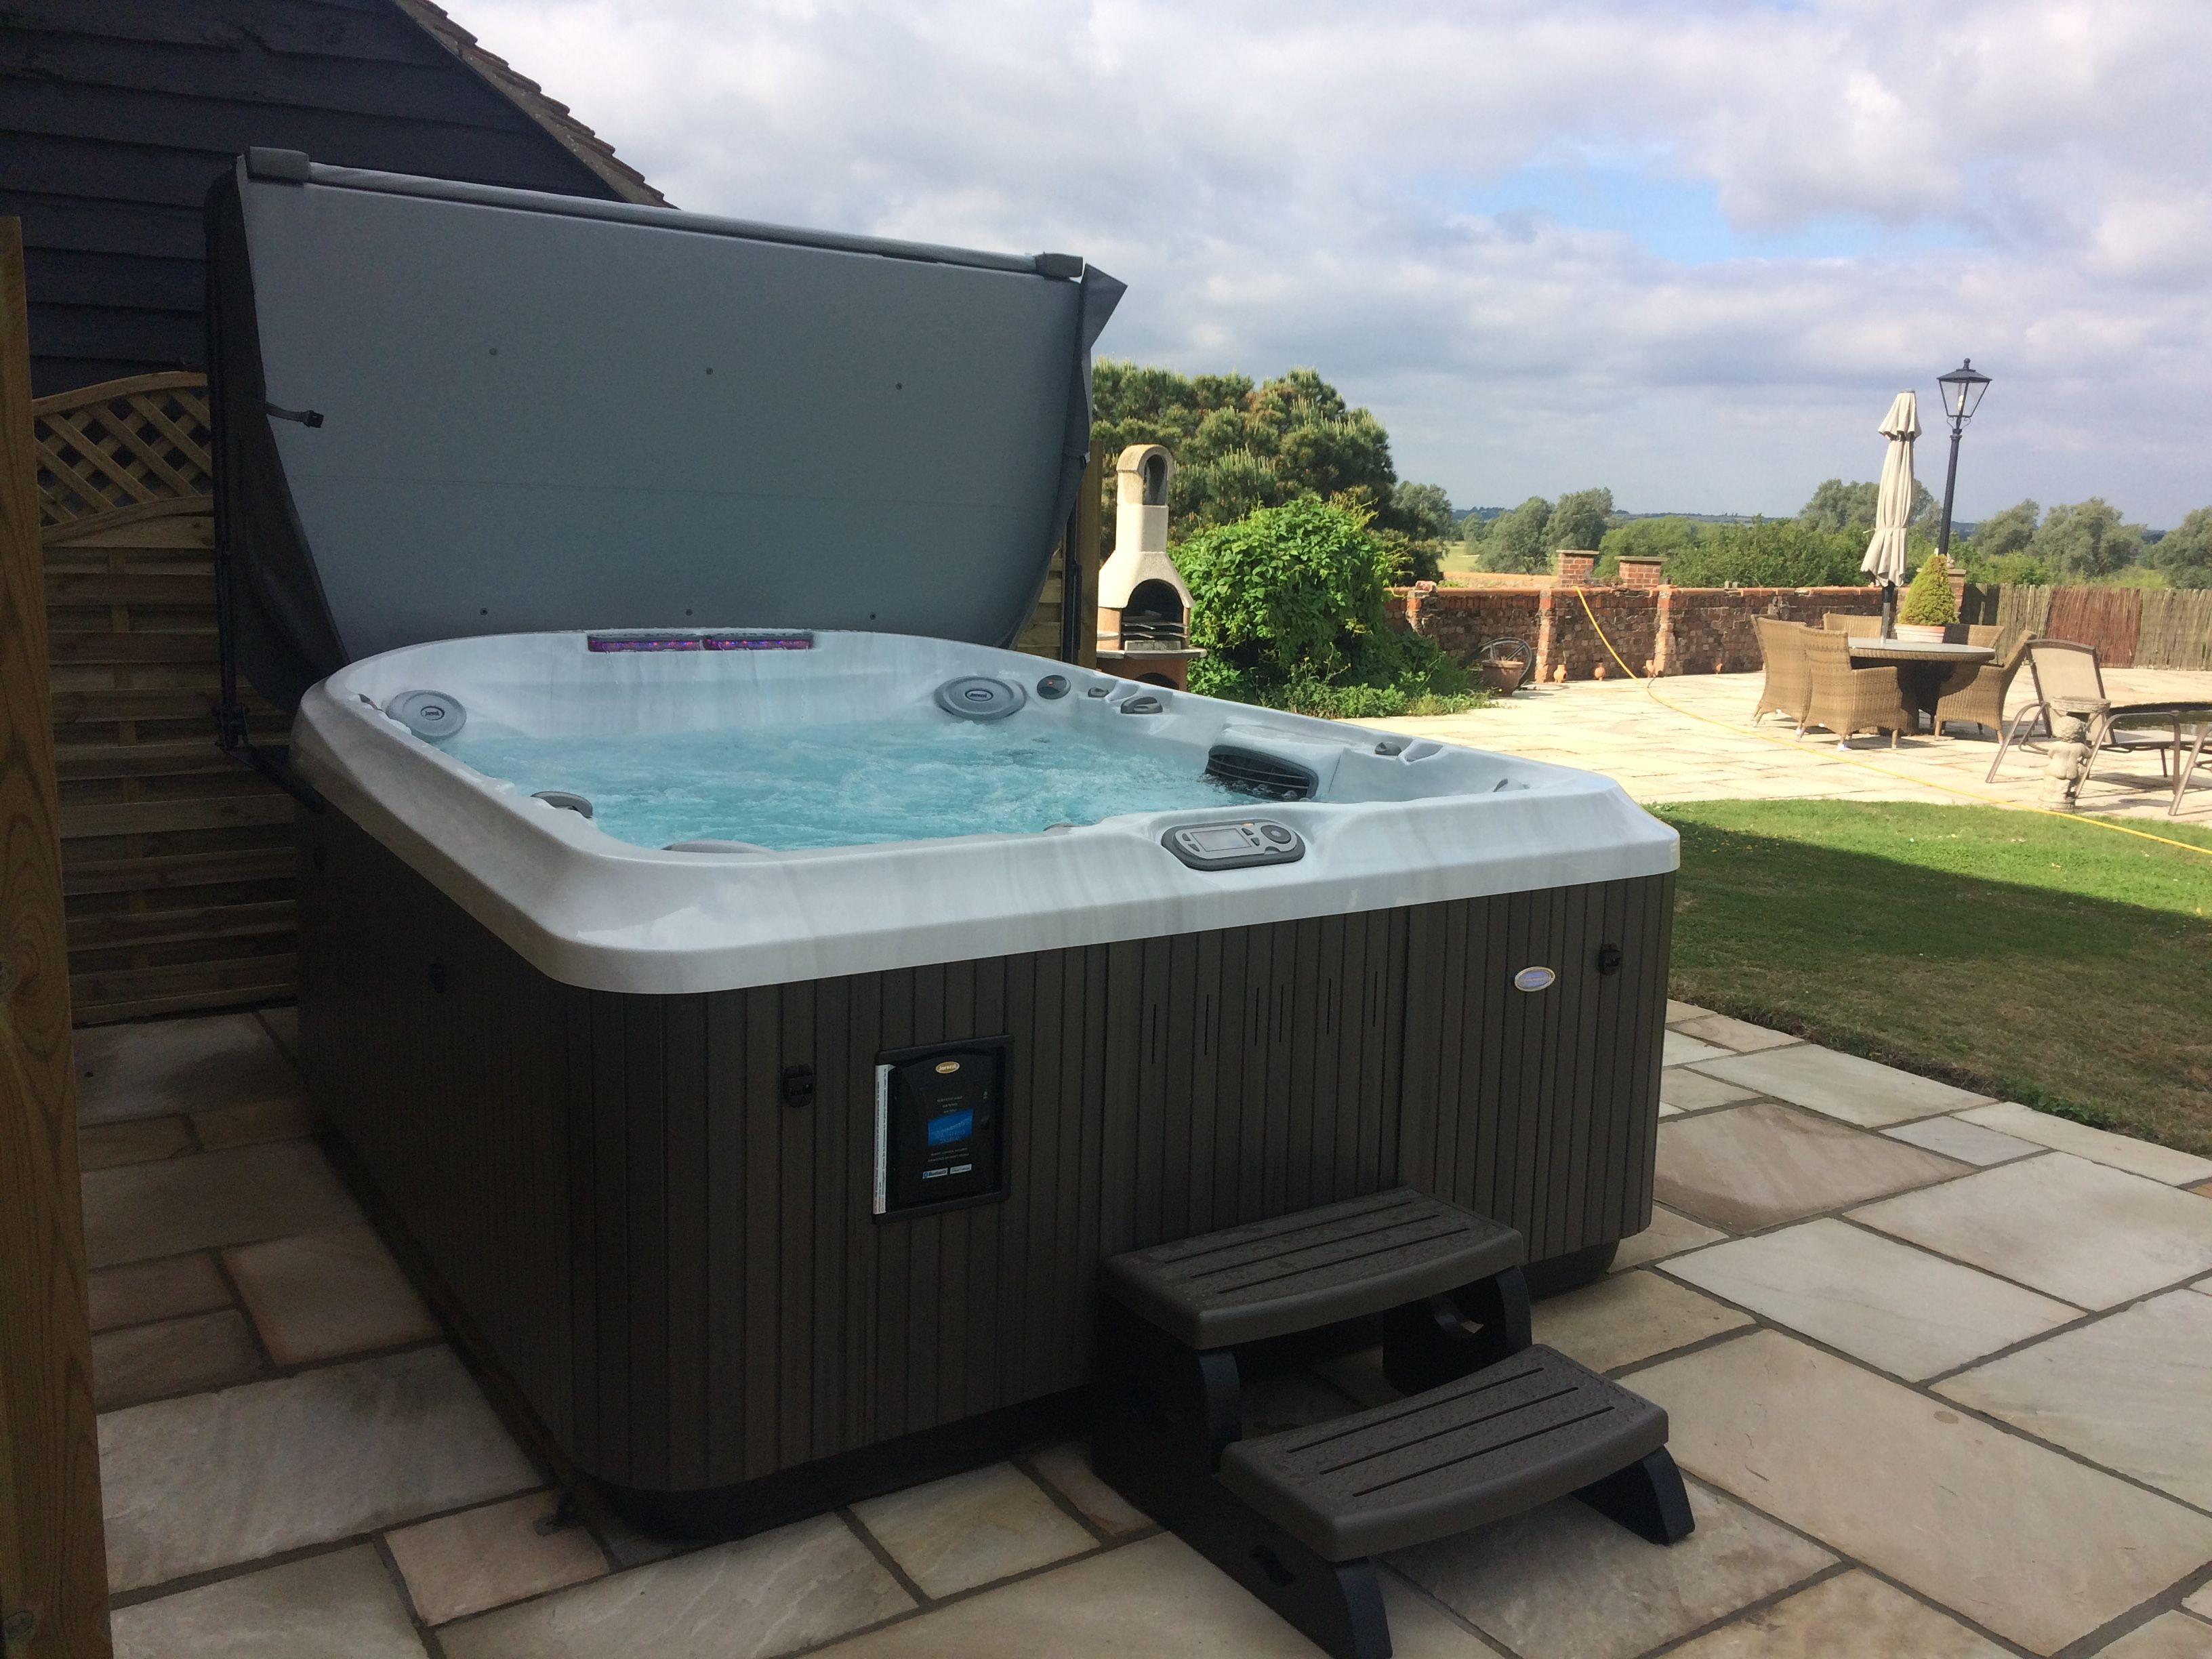 Jacuzzi Exterieur Grande Taille Pin By Arran Glass On Jacuzzi Spas Jacuzzi Spa Outdoor Decor